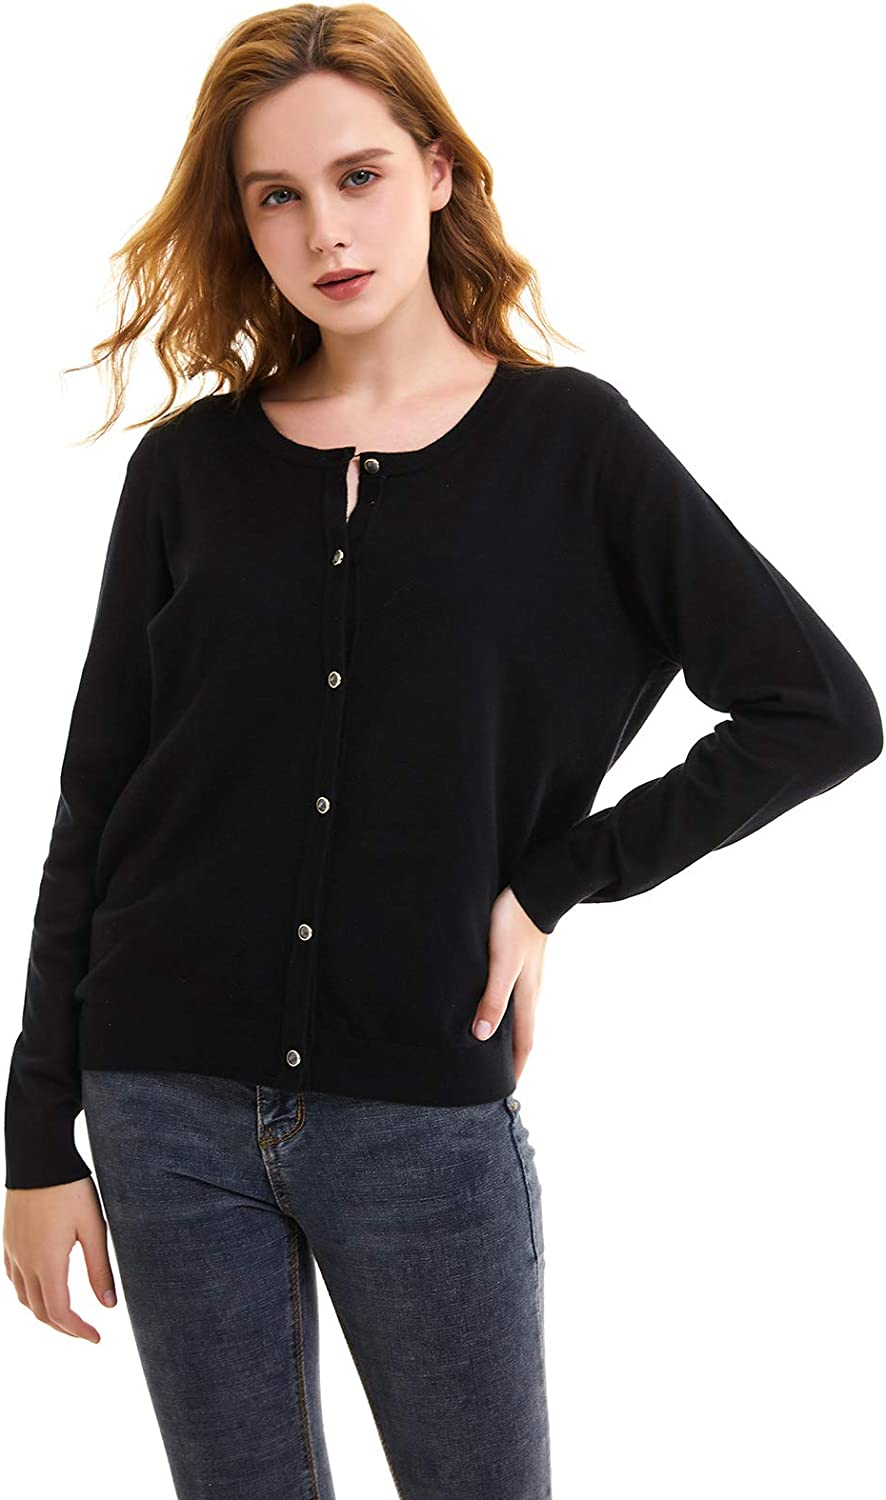 NOVAOFROVER Women's Cardigan Sweater Button Down Crew Neck Long Sleeve Lightweight Soft Classic Fit Knit